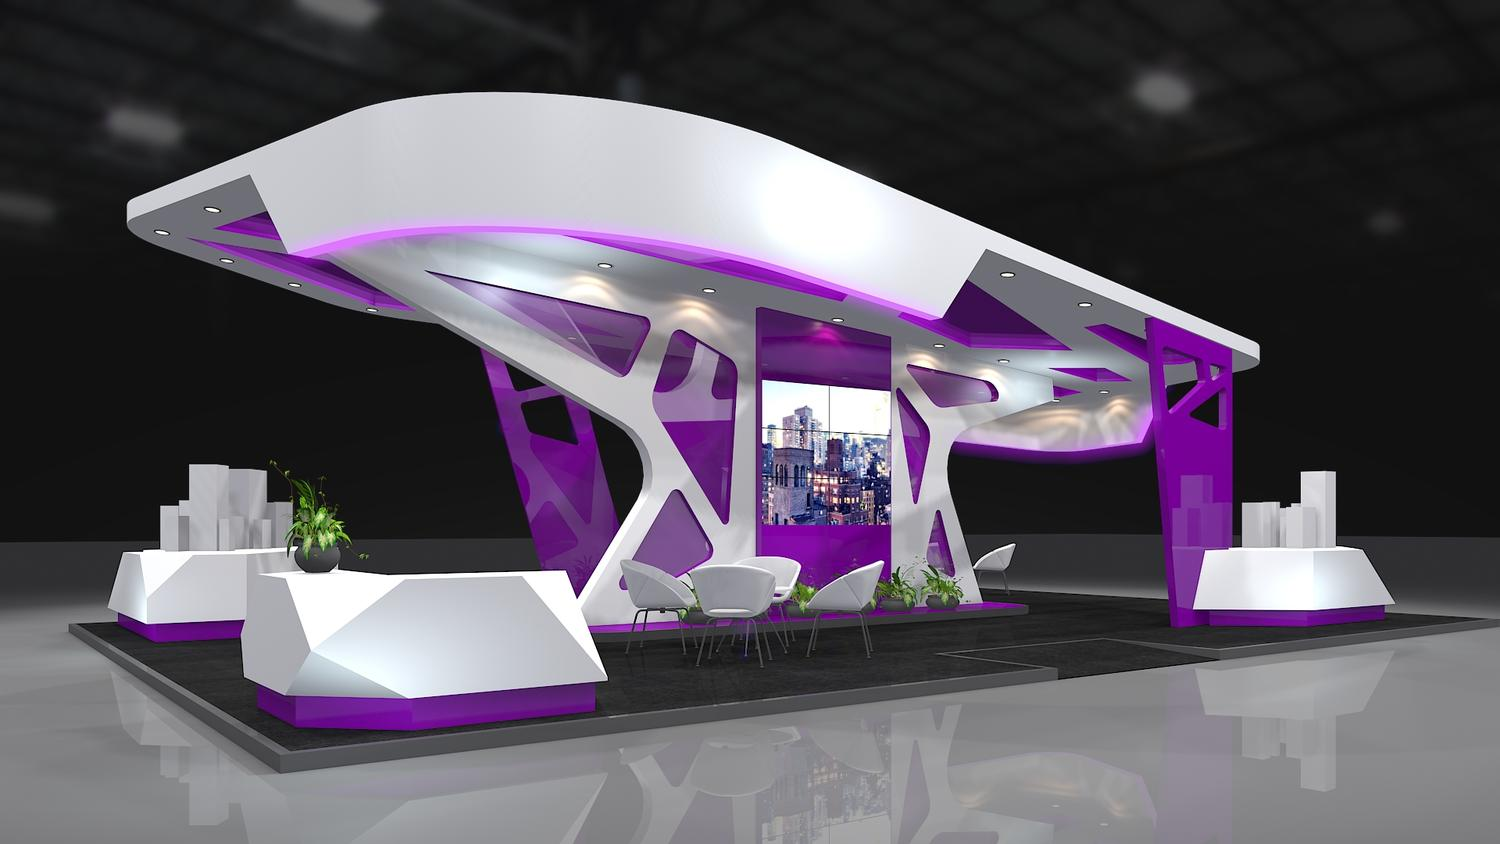 Exhibition Booth 3D Design  by AbelLangbid - 30416